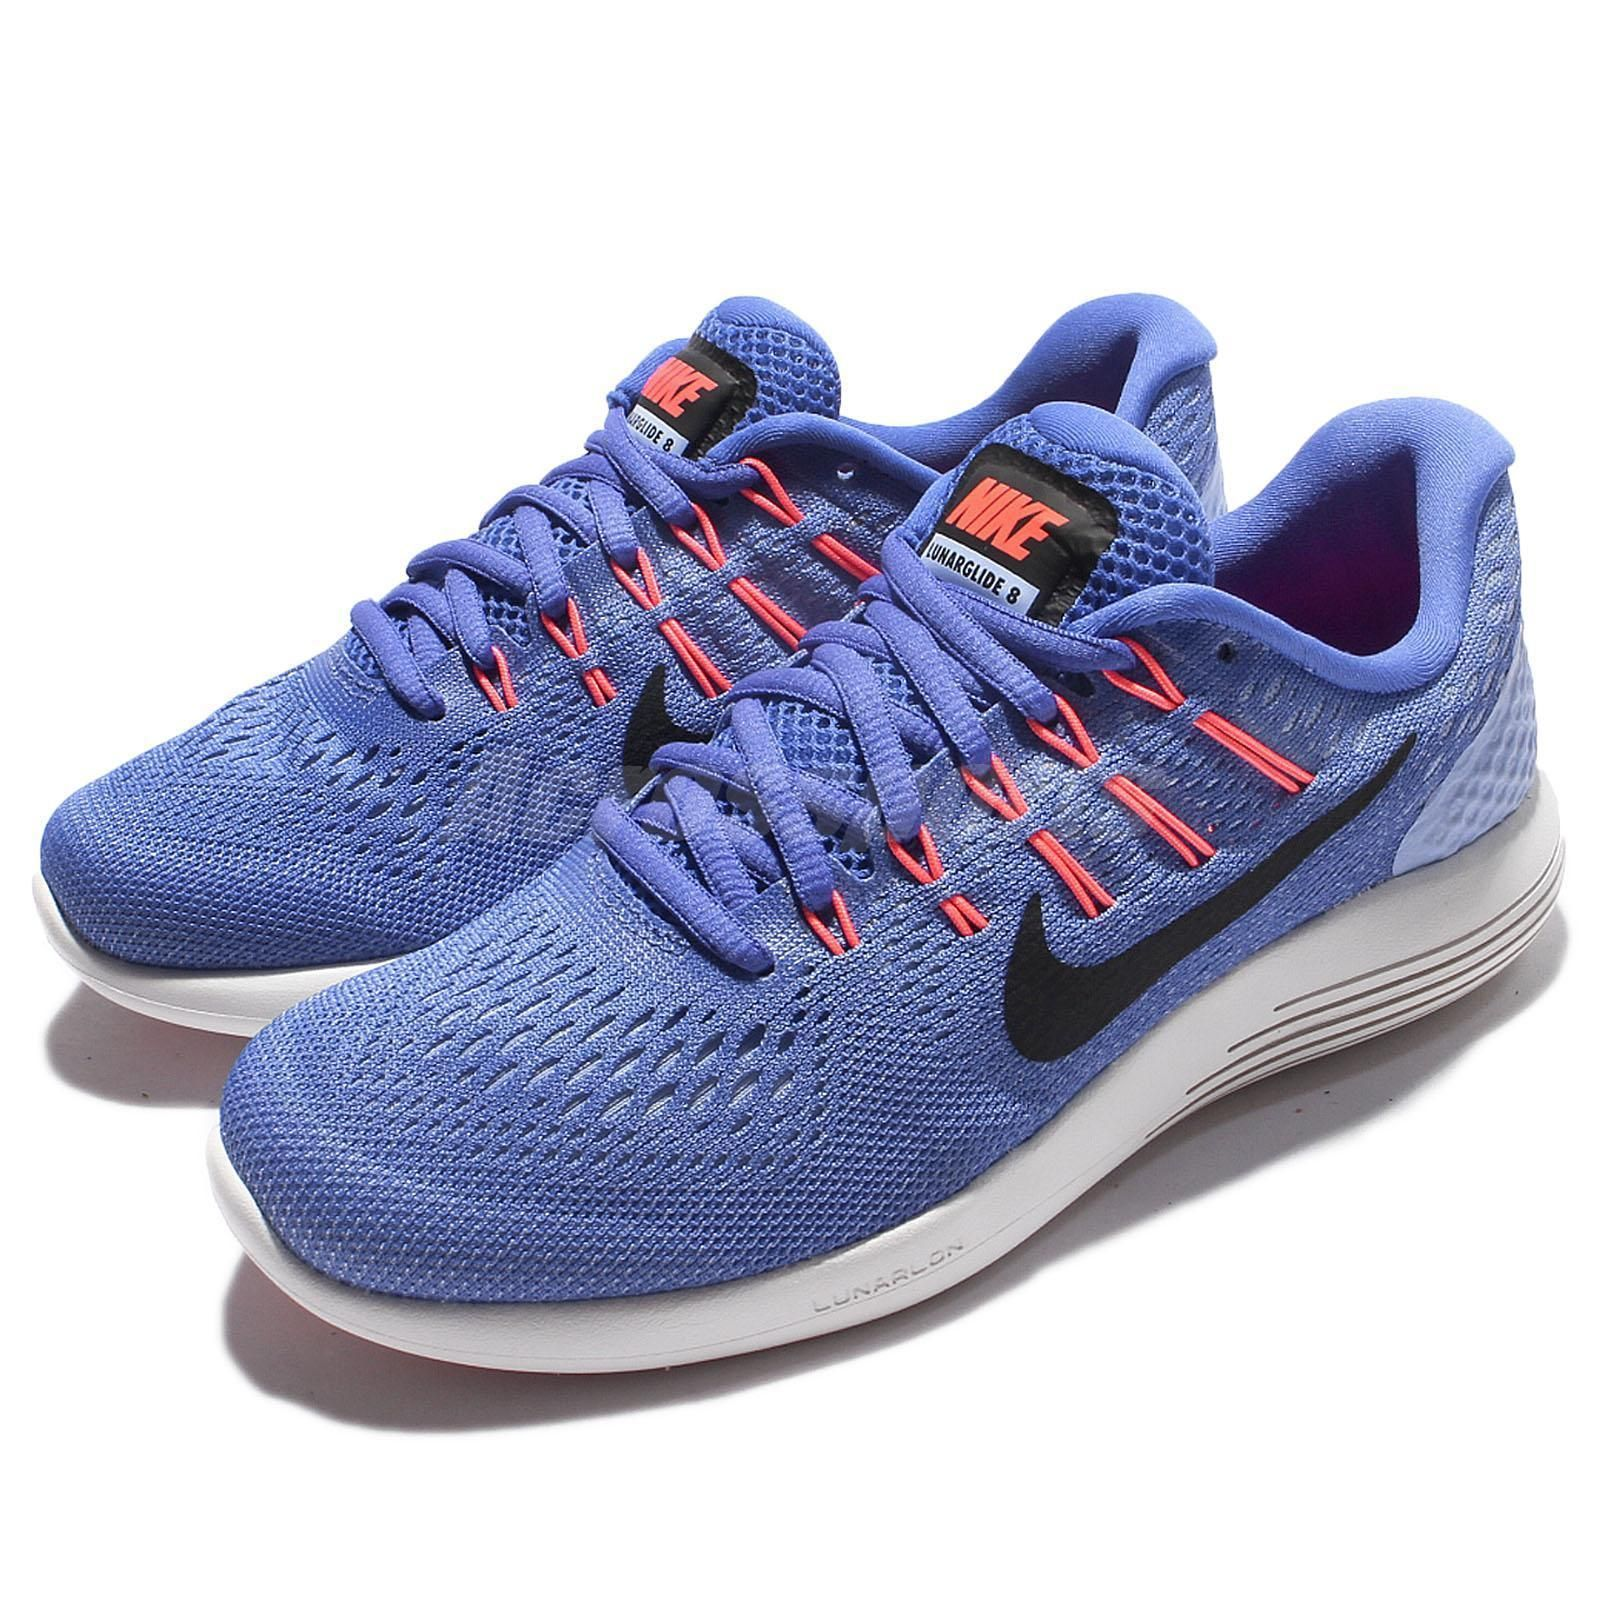 best website 4b494 6a01f ... discount code for wmns nike lunarglide 8 viii blue black women running  shoes sneakers 843726 406